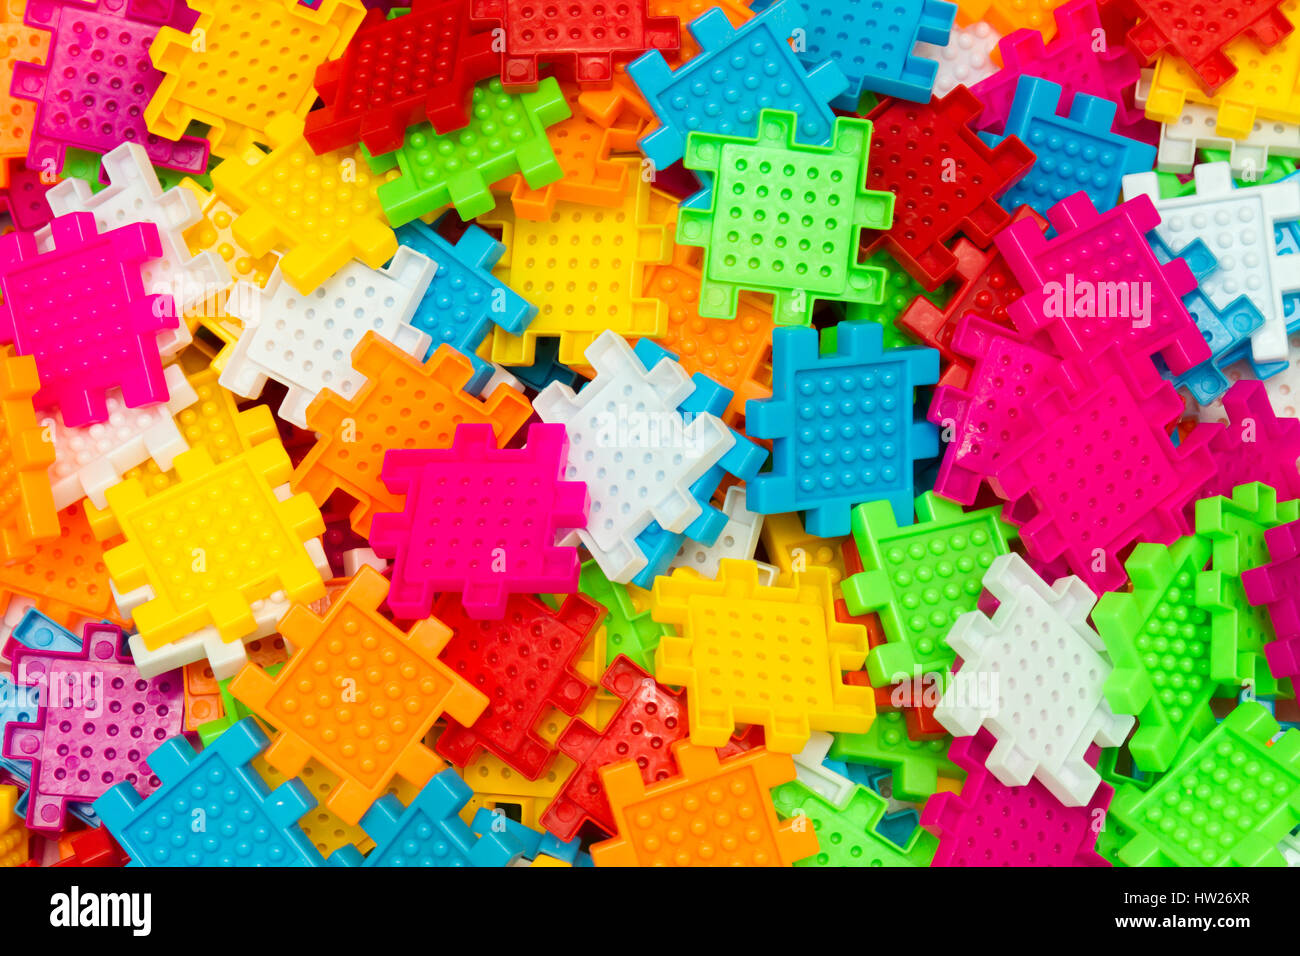 Some colorful jigsaw puzzle pieces close up. - Stock Image